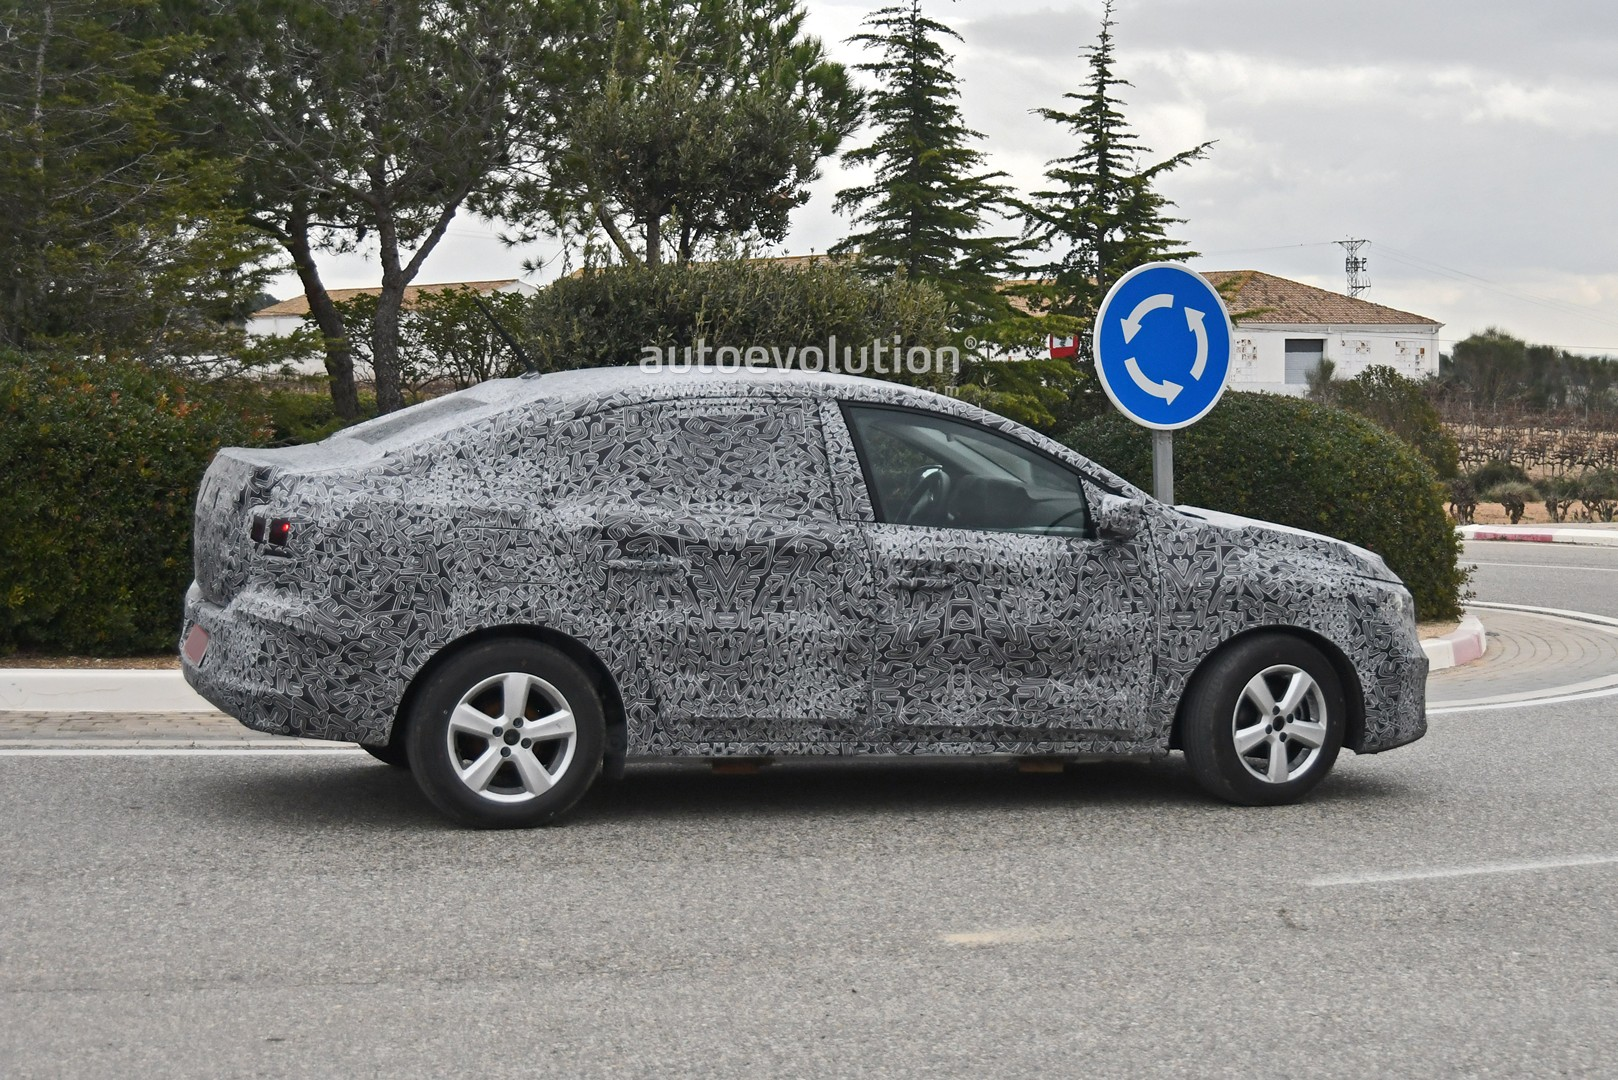 all-new-2021-dacia-logan-spied-with-led-lights-coupe-roof_7